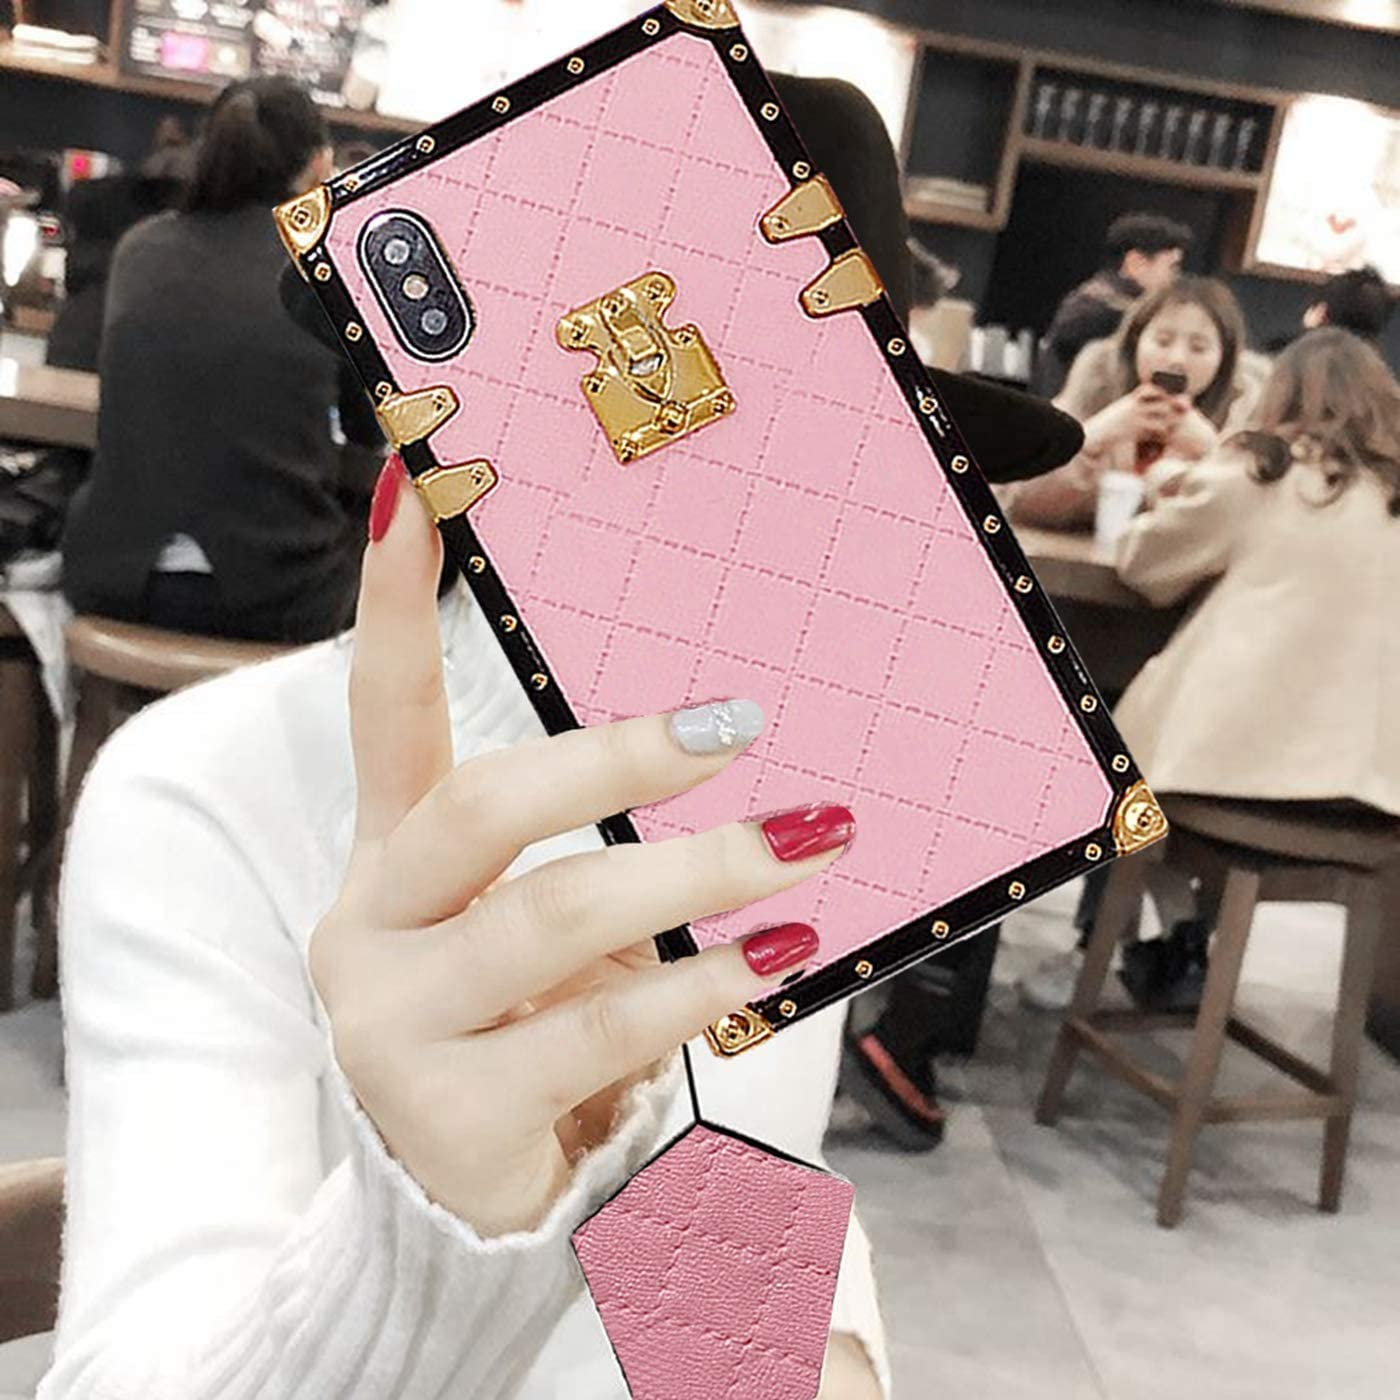 BABEMALL Compatible for iPhone 7 Plus /8 Plus Case, Elegant Diamond Luxury Metal Corner Square PU Leather Classic TPU Bumper Case + Lanyard (Small Cube/Pink)